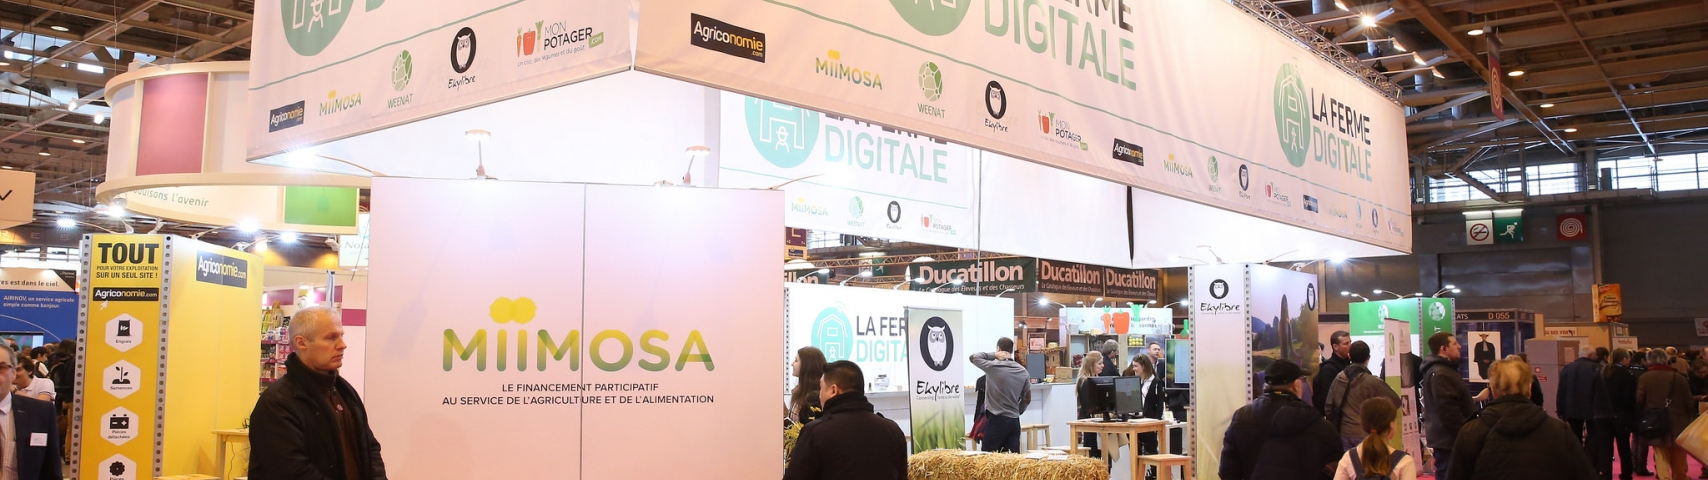 Salon international de l 39 agriculture du 25 f vrier au 05 for Salon porte de versailles calendrier 2017